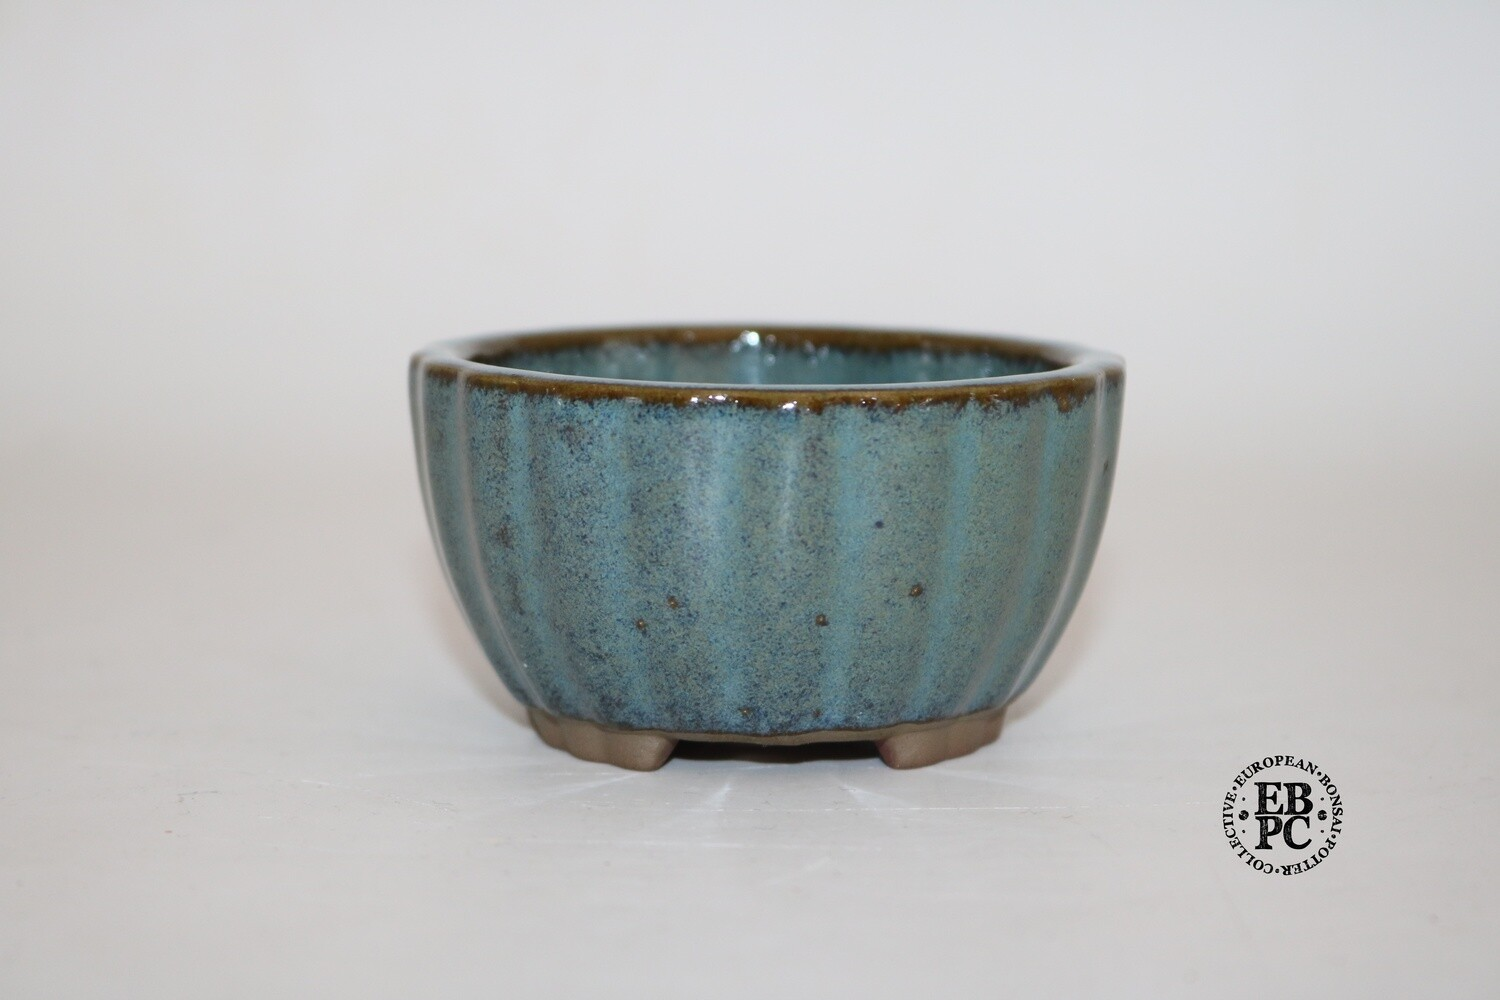 SOLD - Willow Bonsai Pots, S.Africa -  Round; Multi-faceted Design; 'Peacock' Glaze; Shades of Blue; Browns; Scalloped Feet; EBPC Stamped.